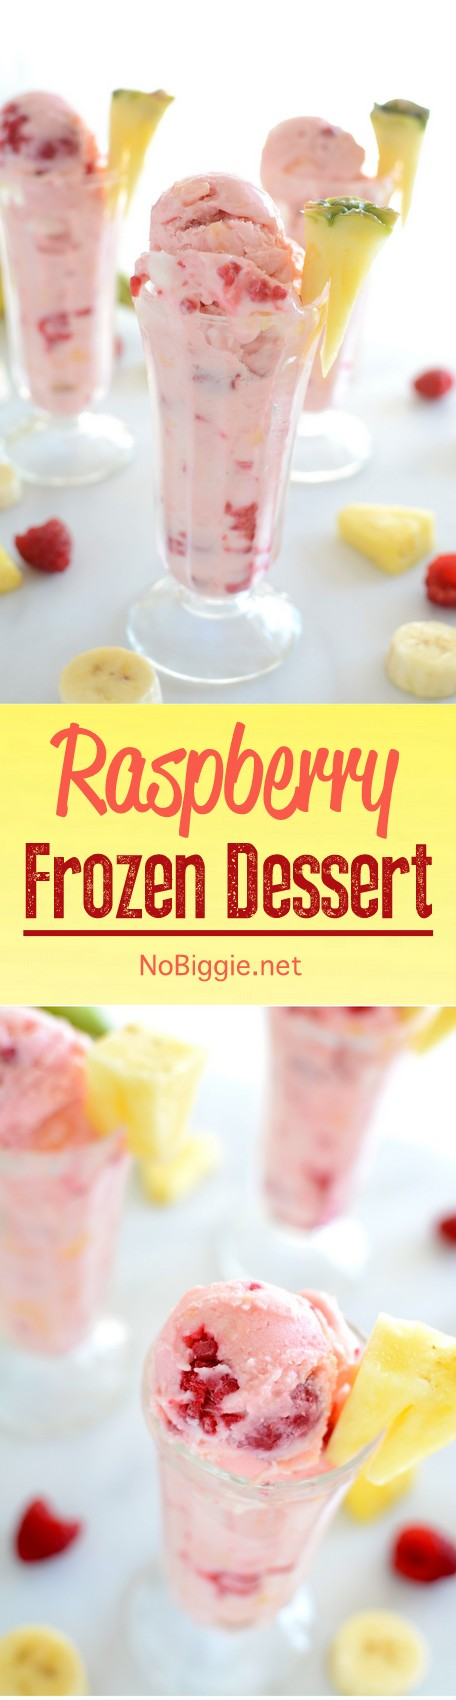 Frozen Raspberry Dessert - a semi-homemade ice cream dessert that\'s so easy to whip up. #icecream #frozendessert #raspberry #raspberrydessert #summerdesserts